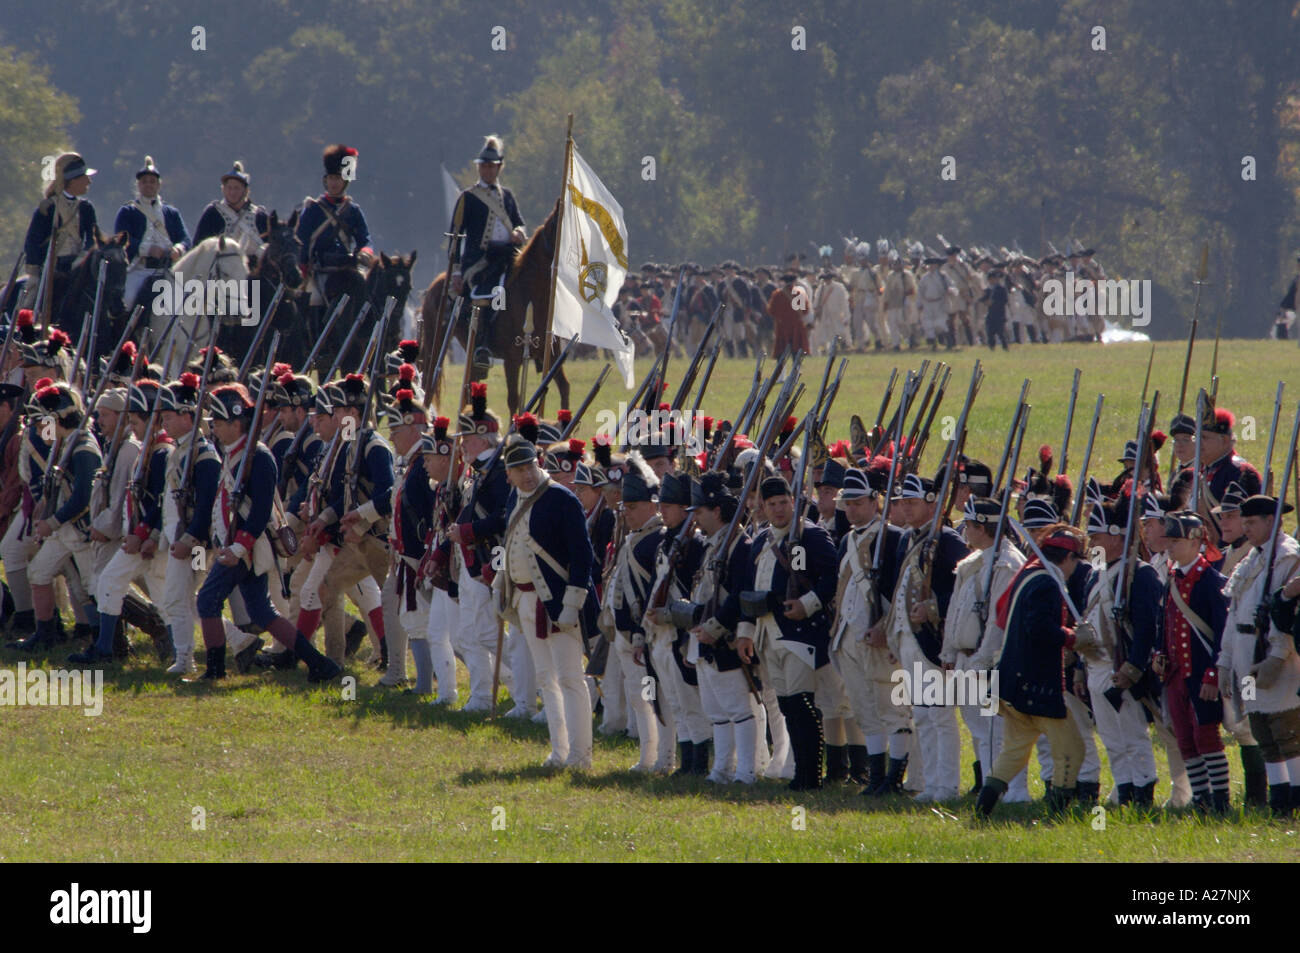 continental army vs british redcoats a Introduction the british army and the continental army had similarities and differences but they were both powerful armies that fought each other during the revolutionary war.